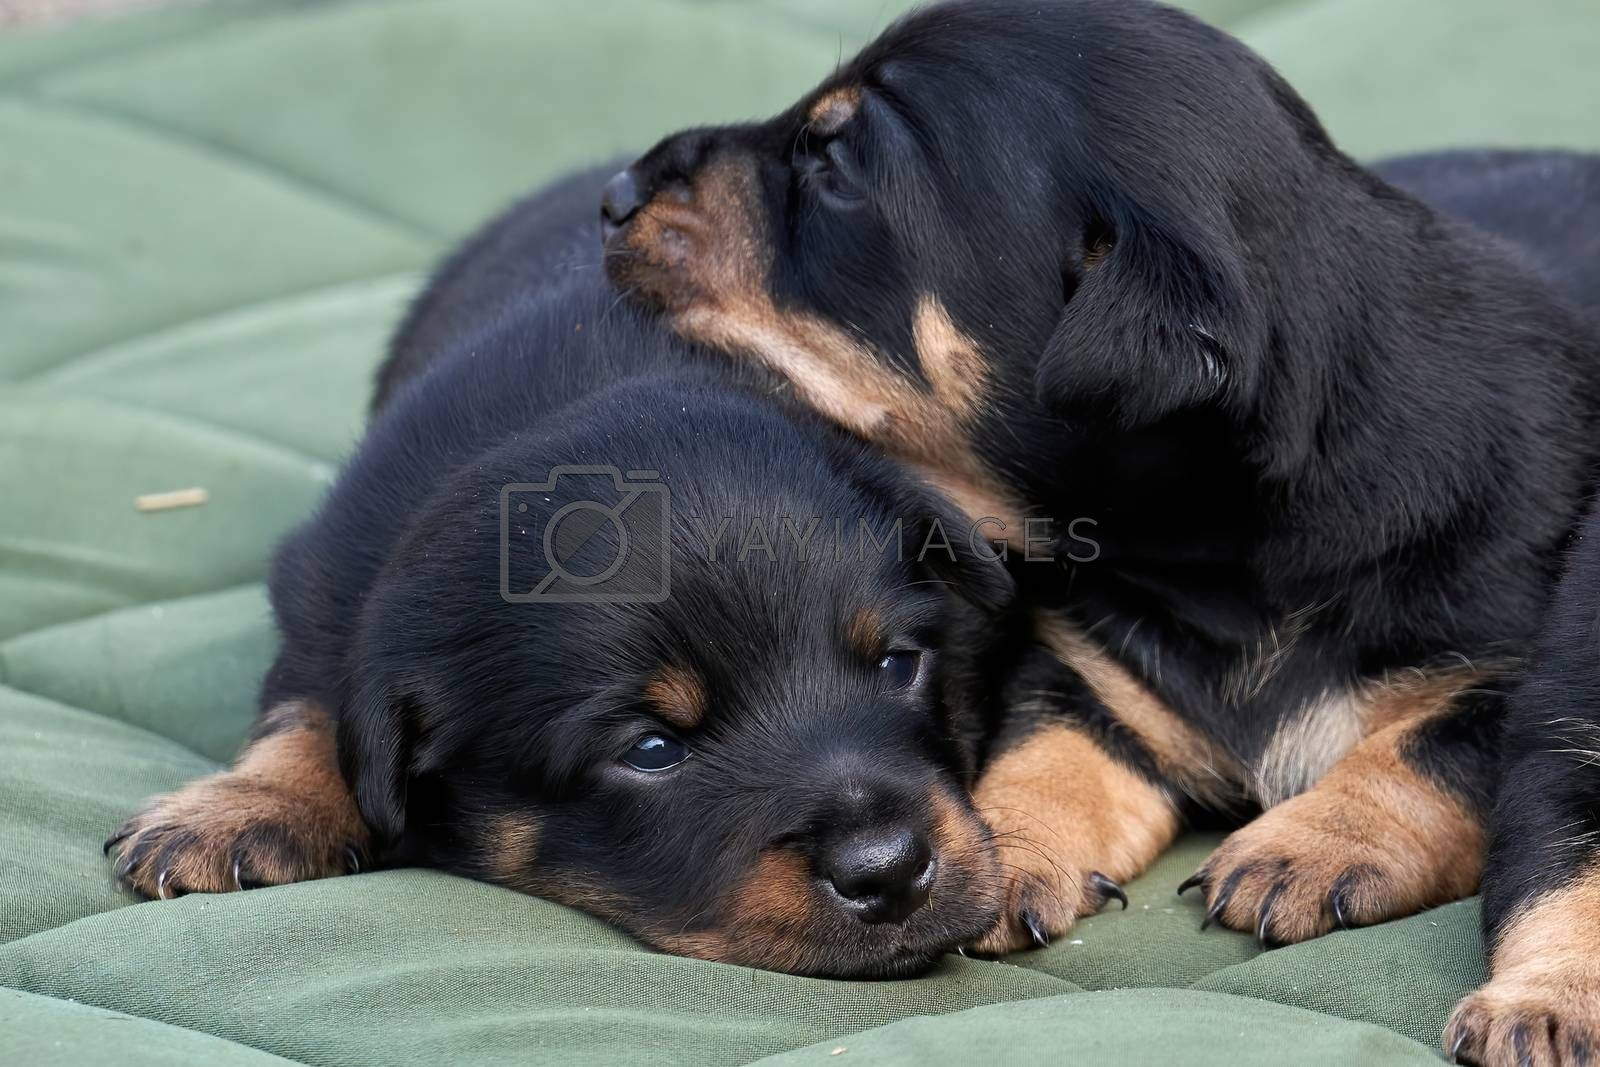 Jack Russell terrier puppies. Close-up portrait, lie on a green cloth.